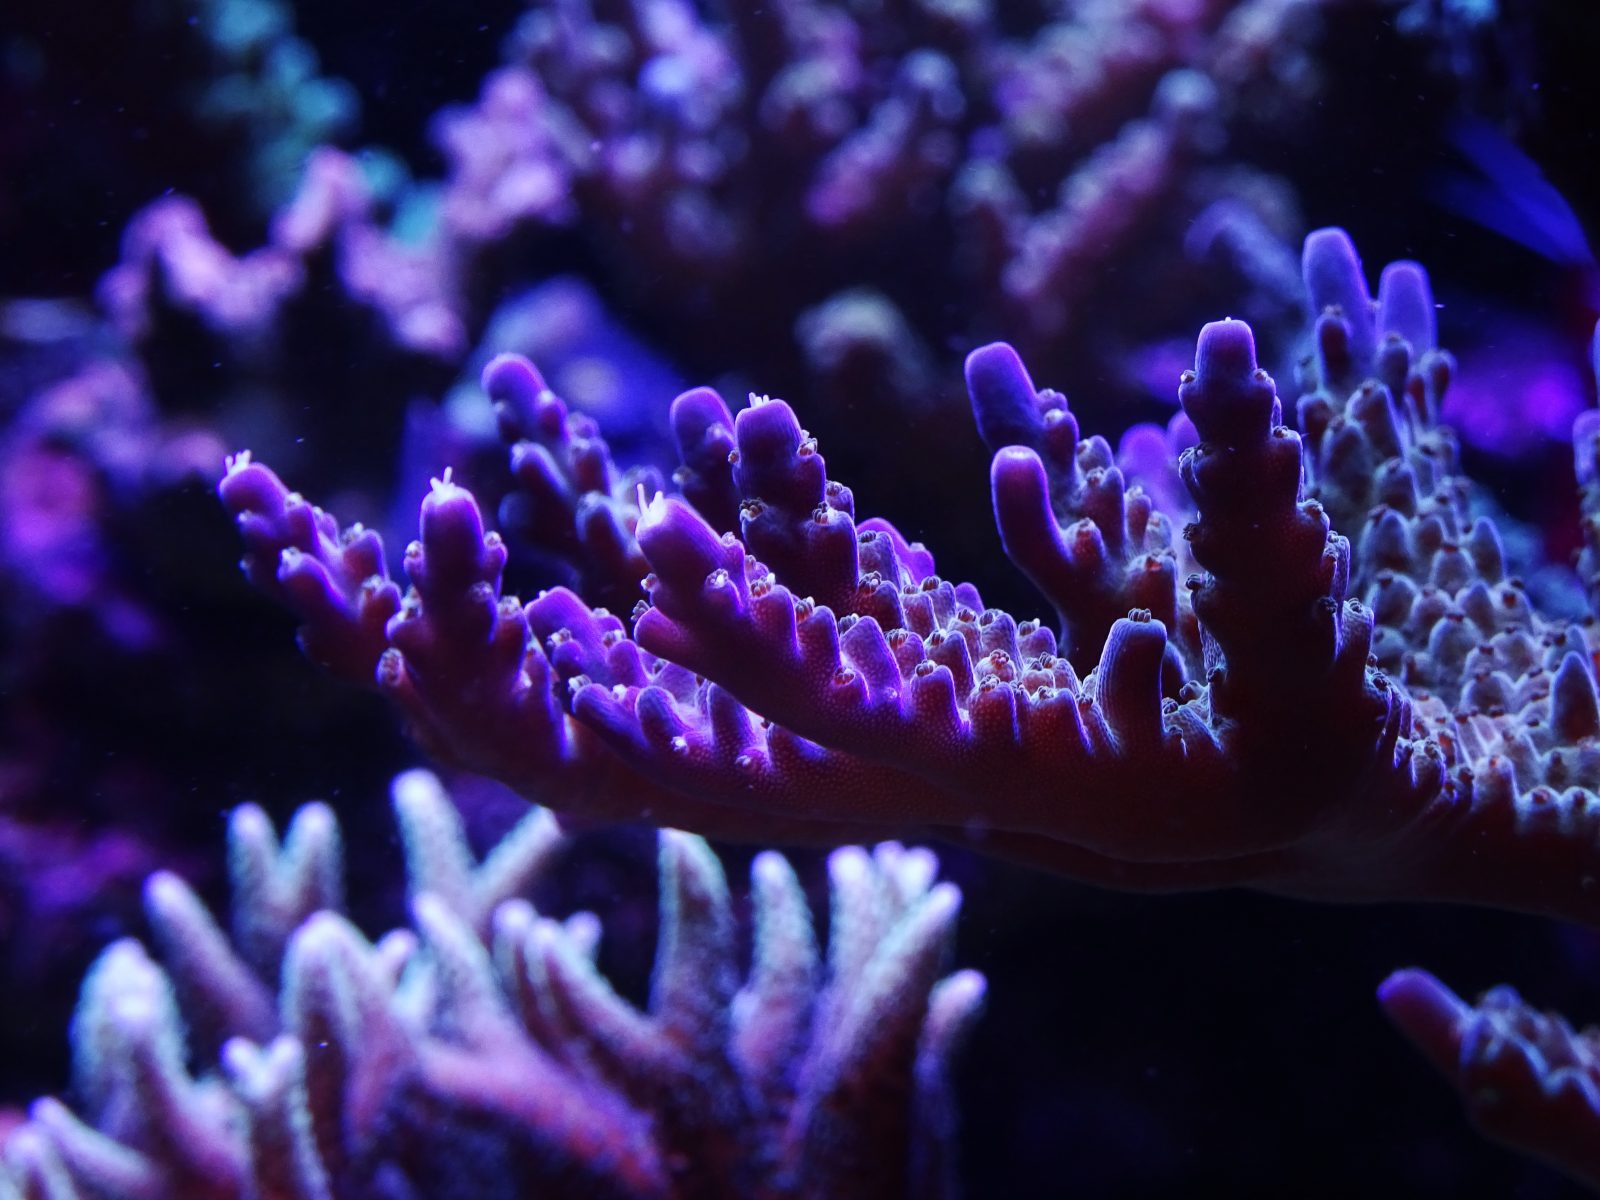 -Violet-sps-aquarium LED